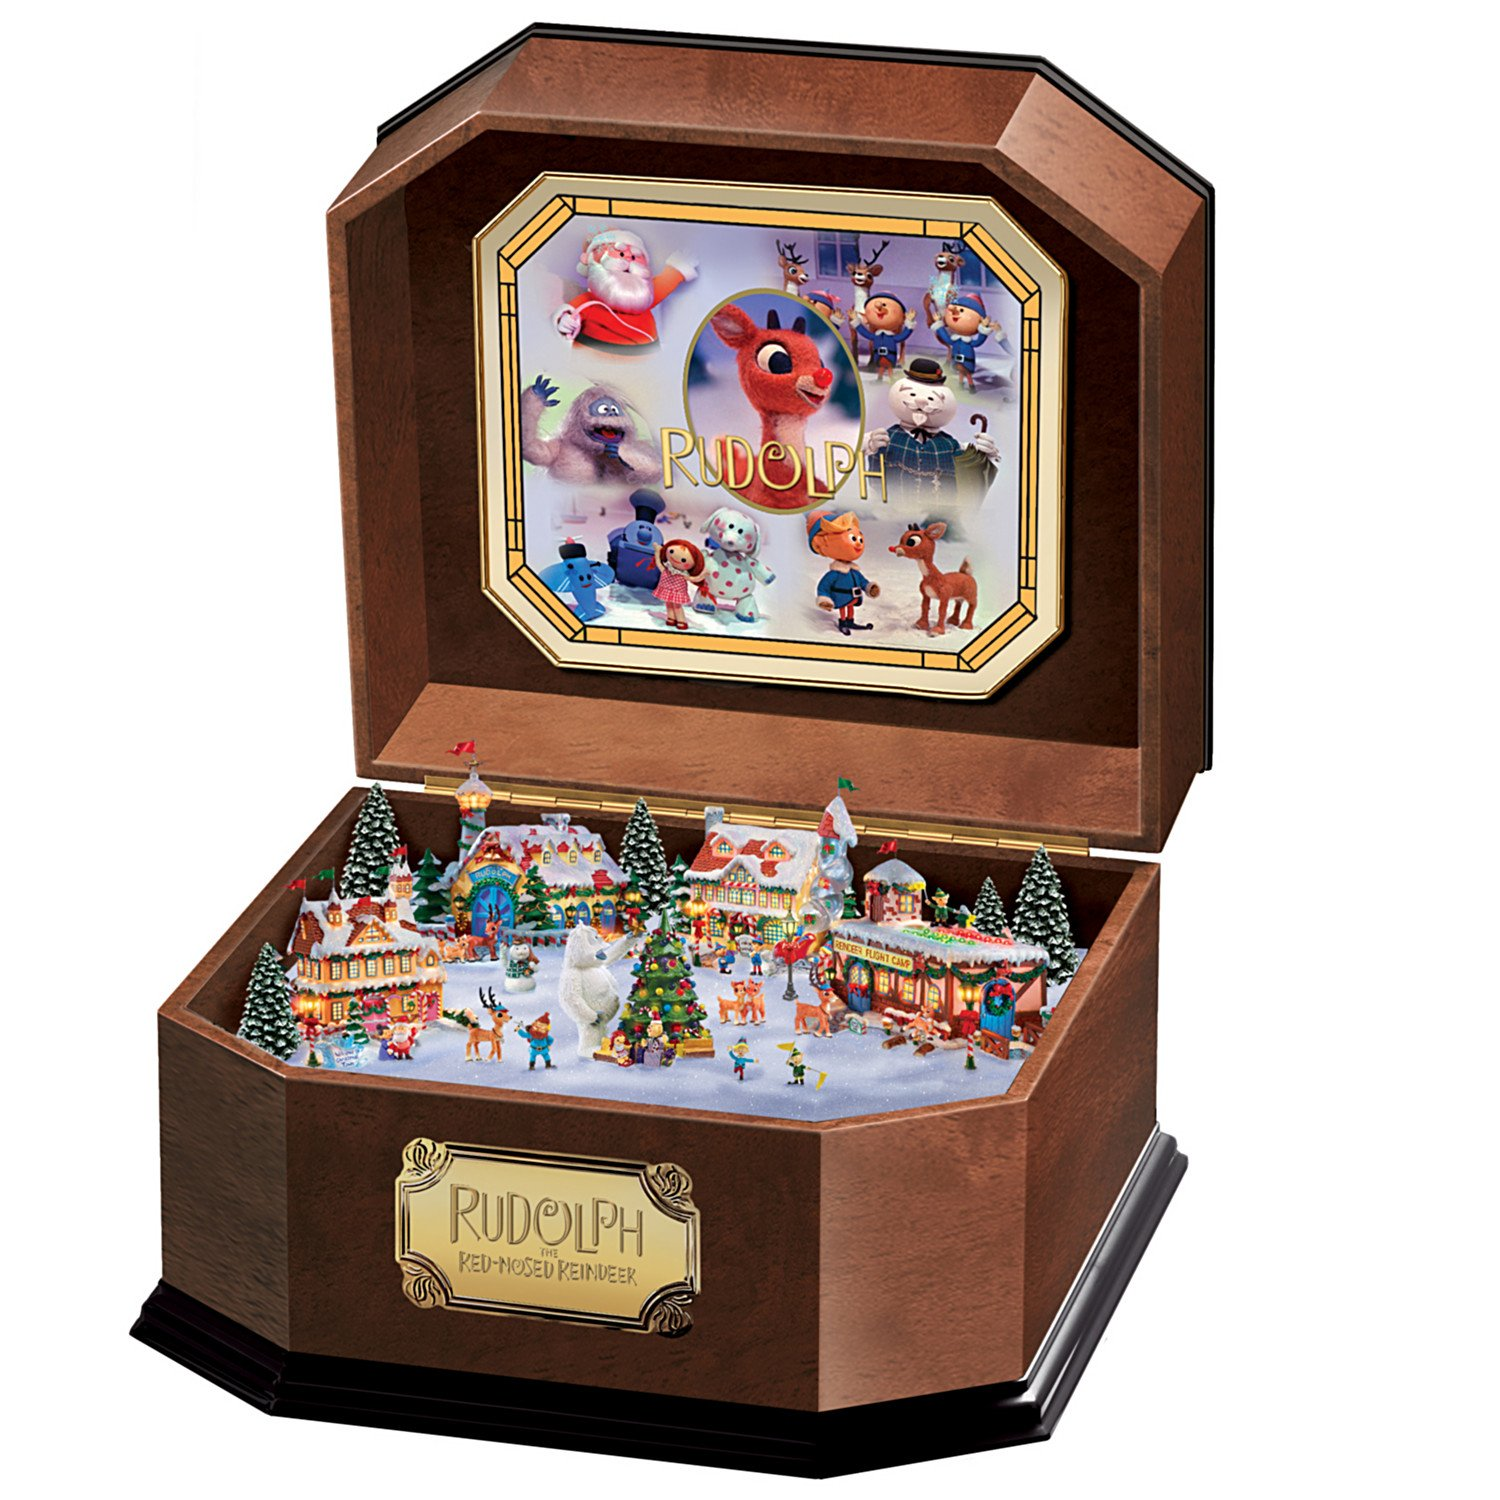 Image of Christmas Celebration, Rudolph The Red-Nosed Reindeer Music Box